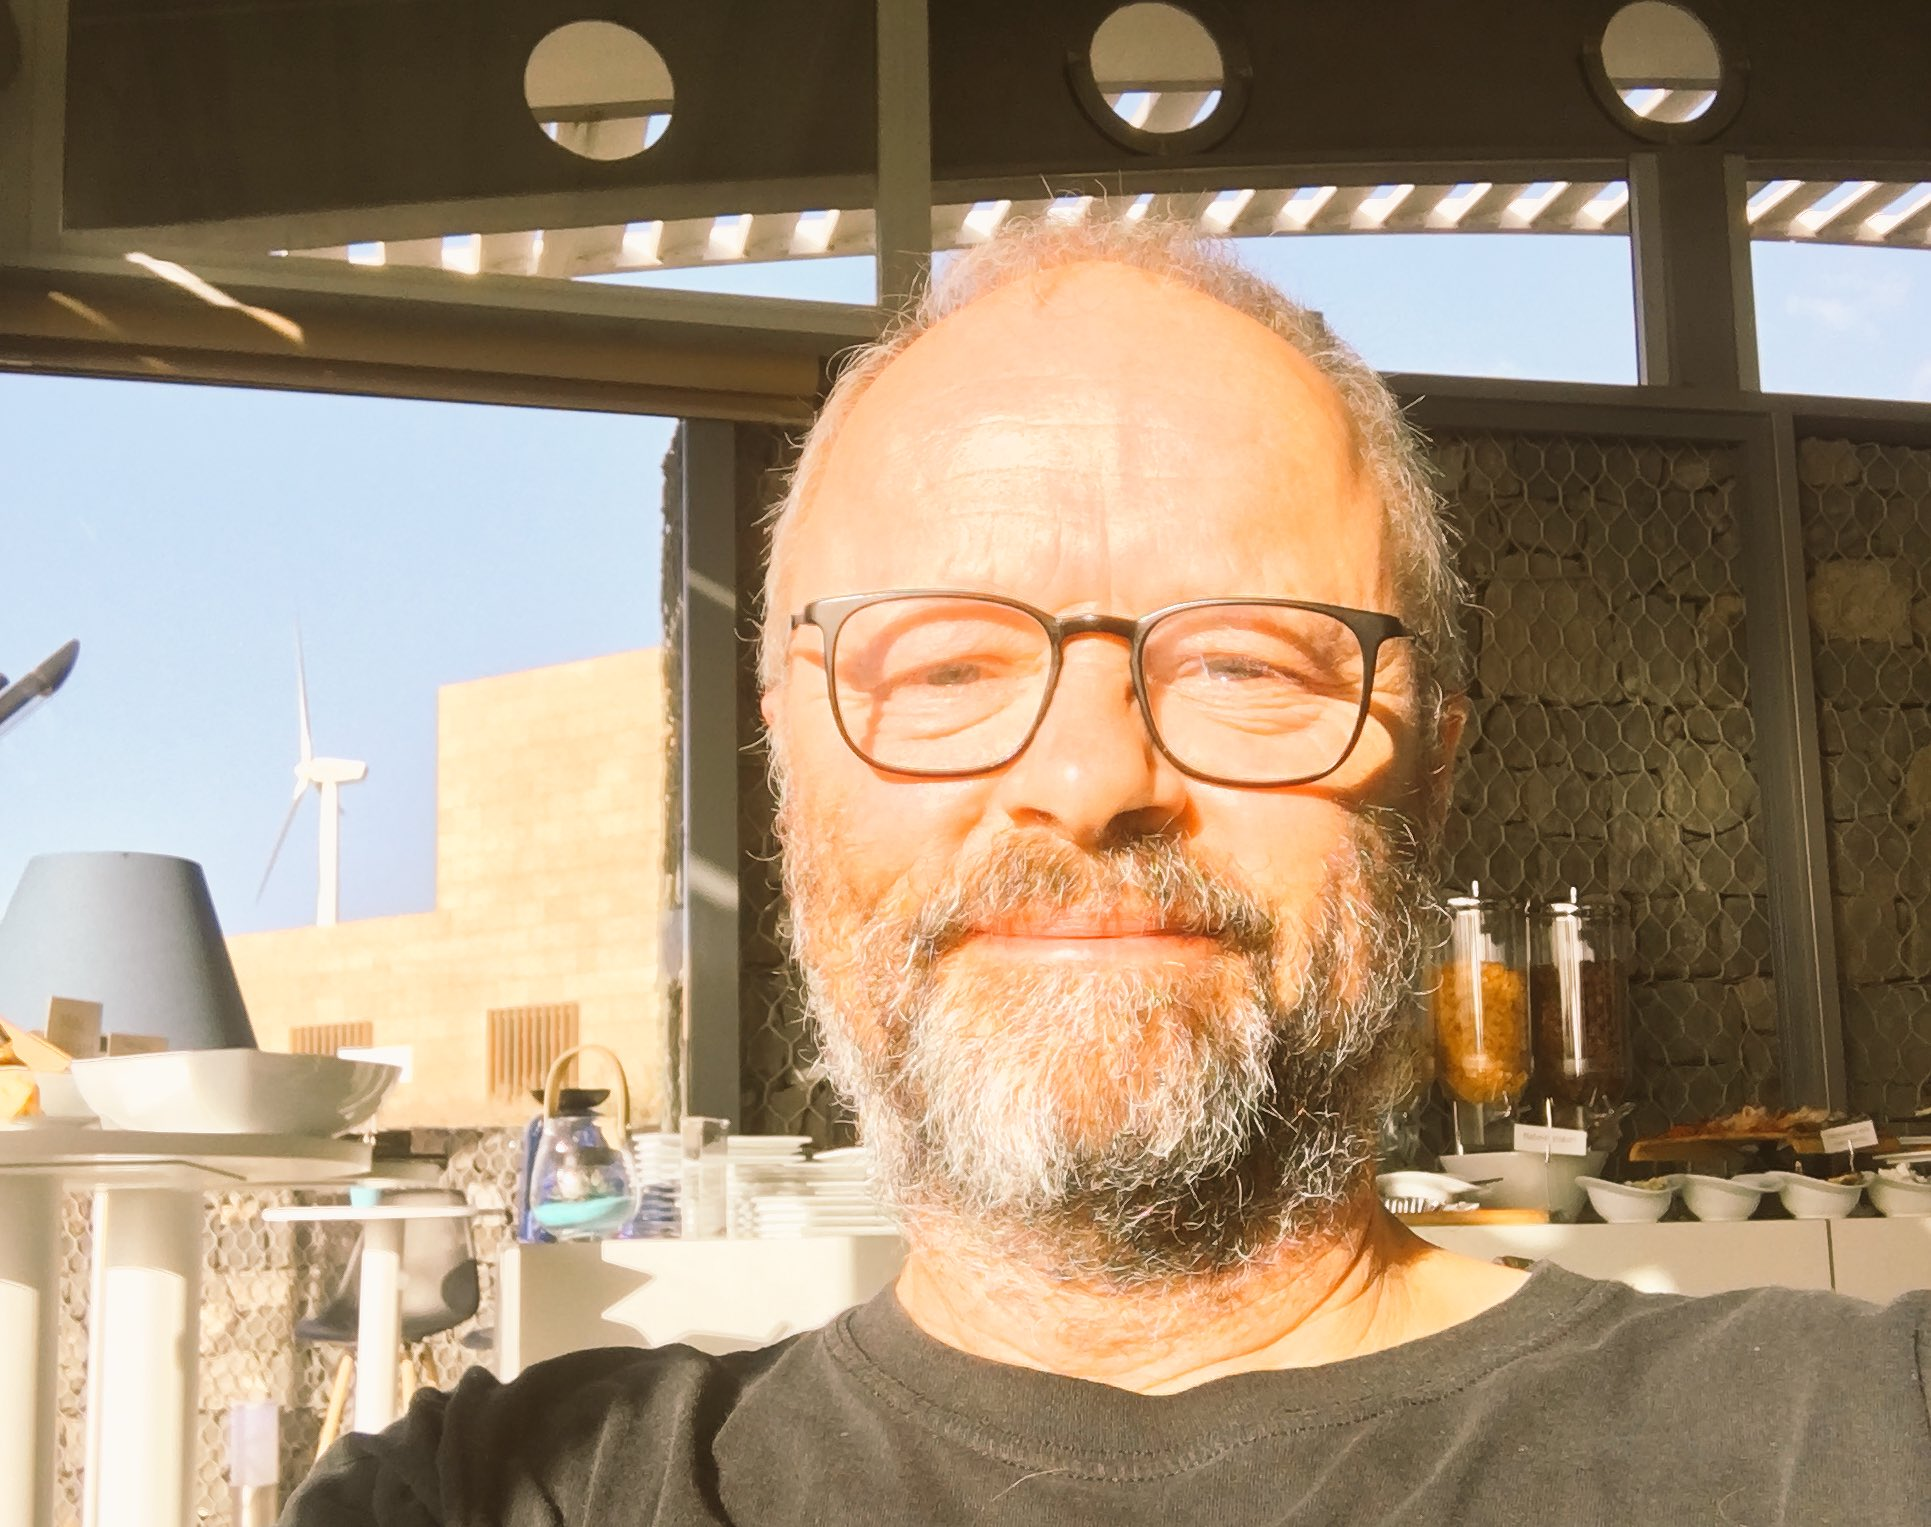 #Shorttermsmugmode  9:40am and the sun is HOT.. https://t.co/kNl2GDXFDJ